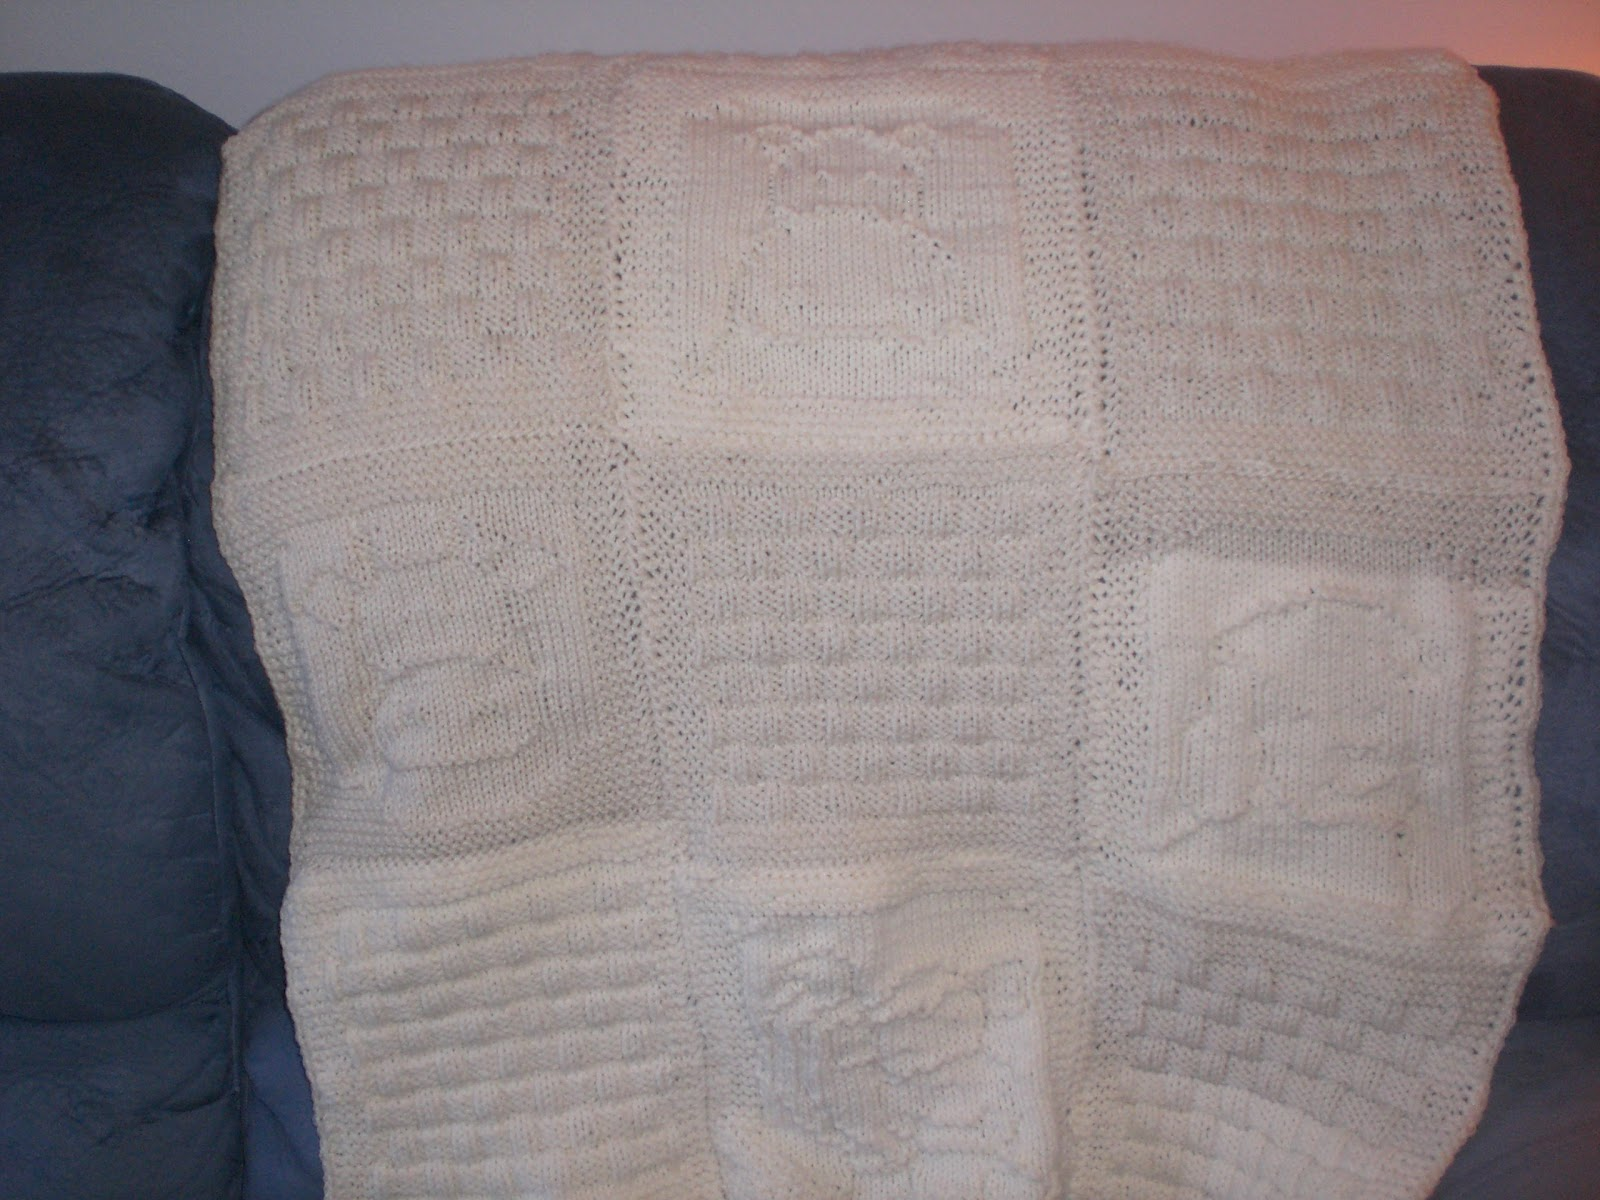 Luvsknitting: New Baby Blanket with Animals & Basketweave